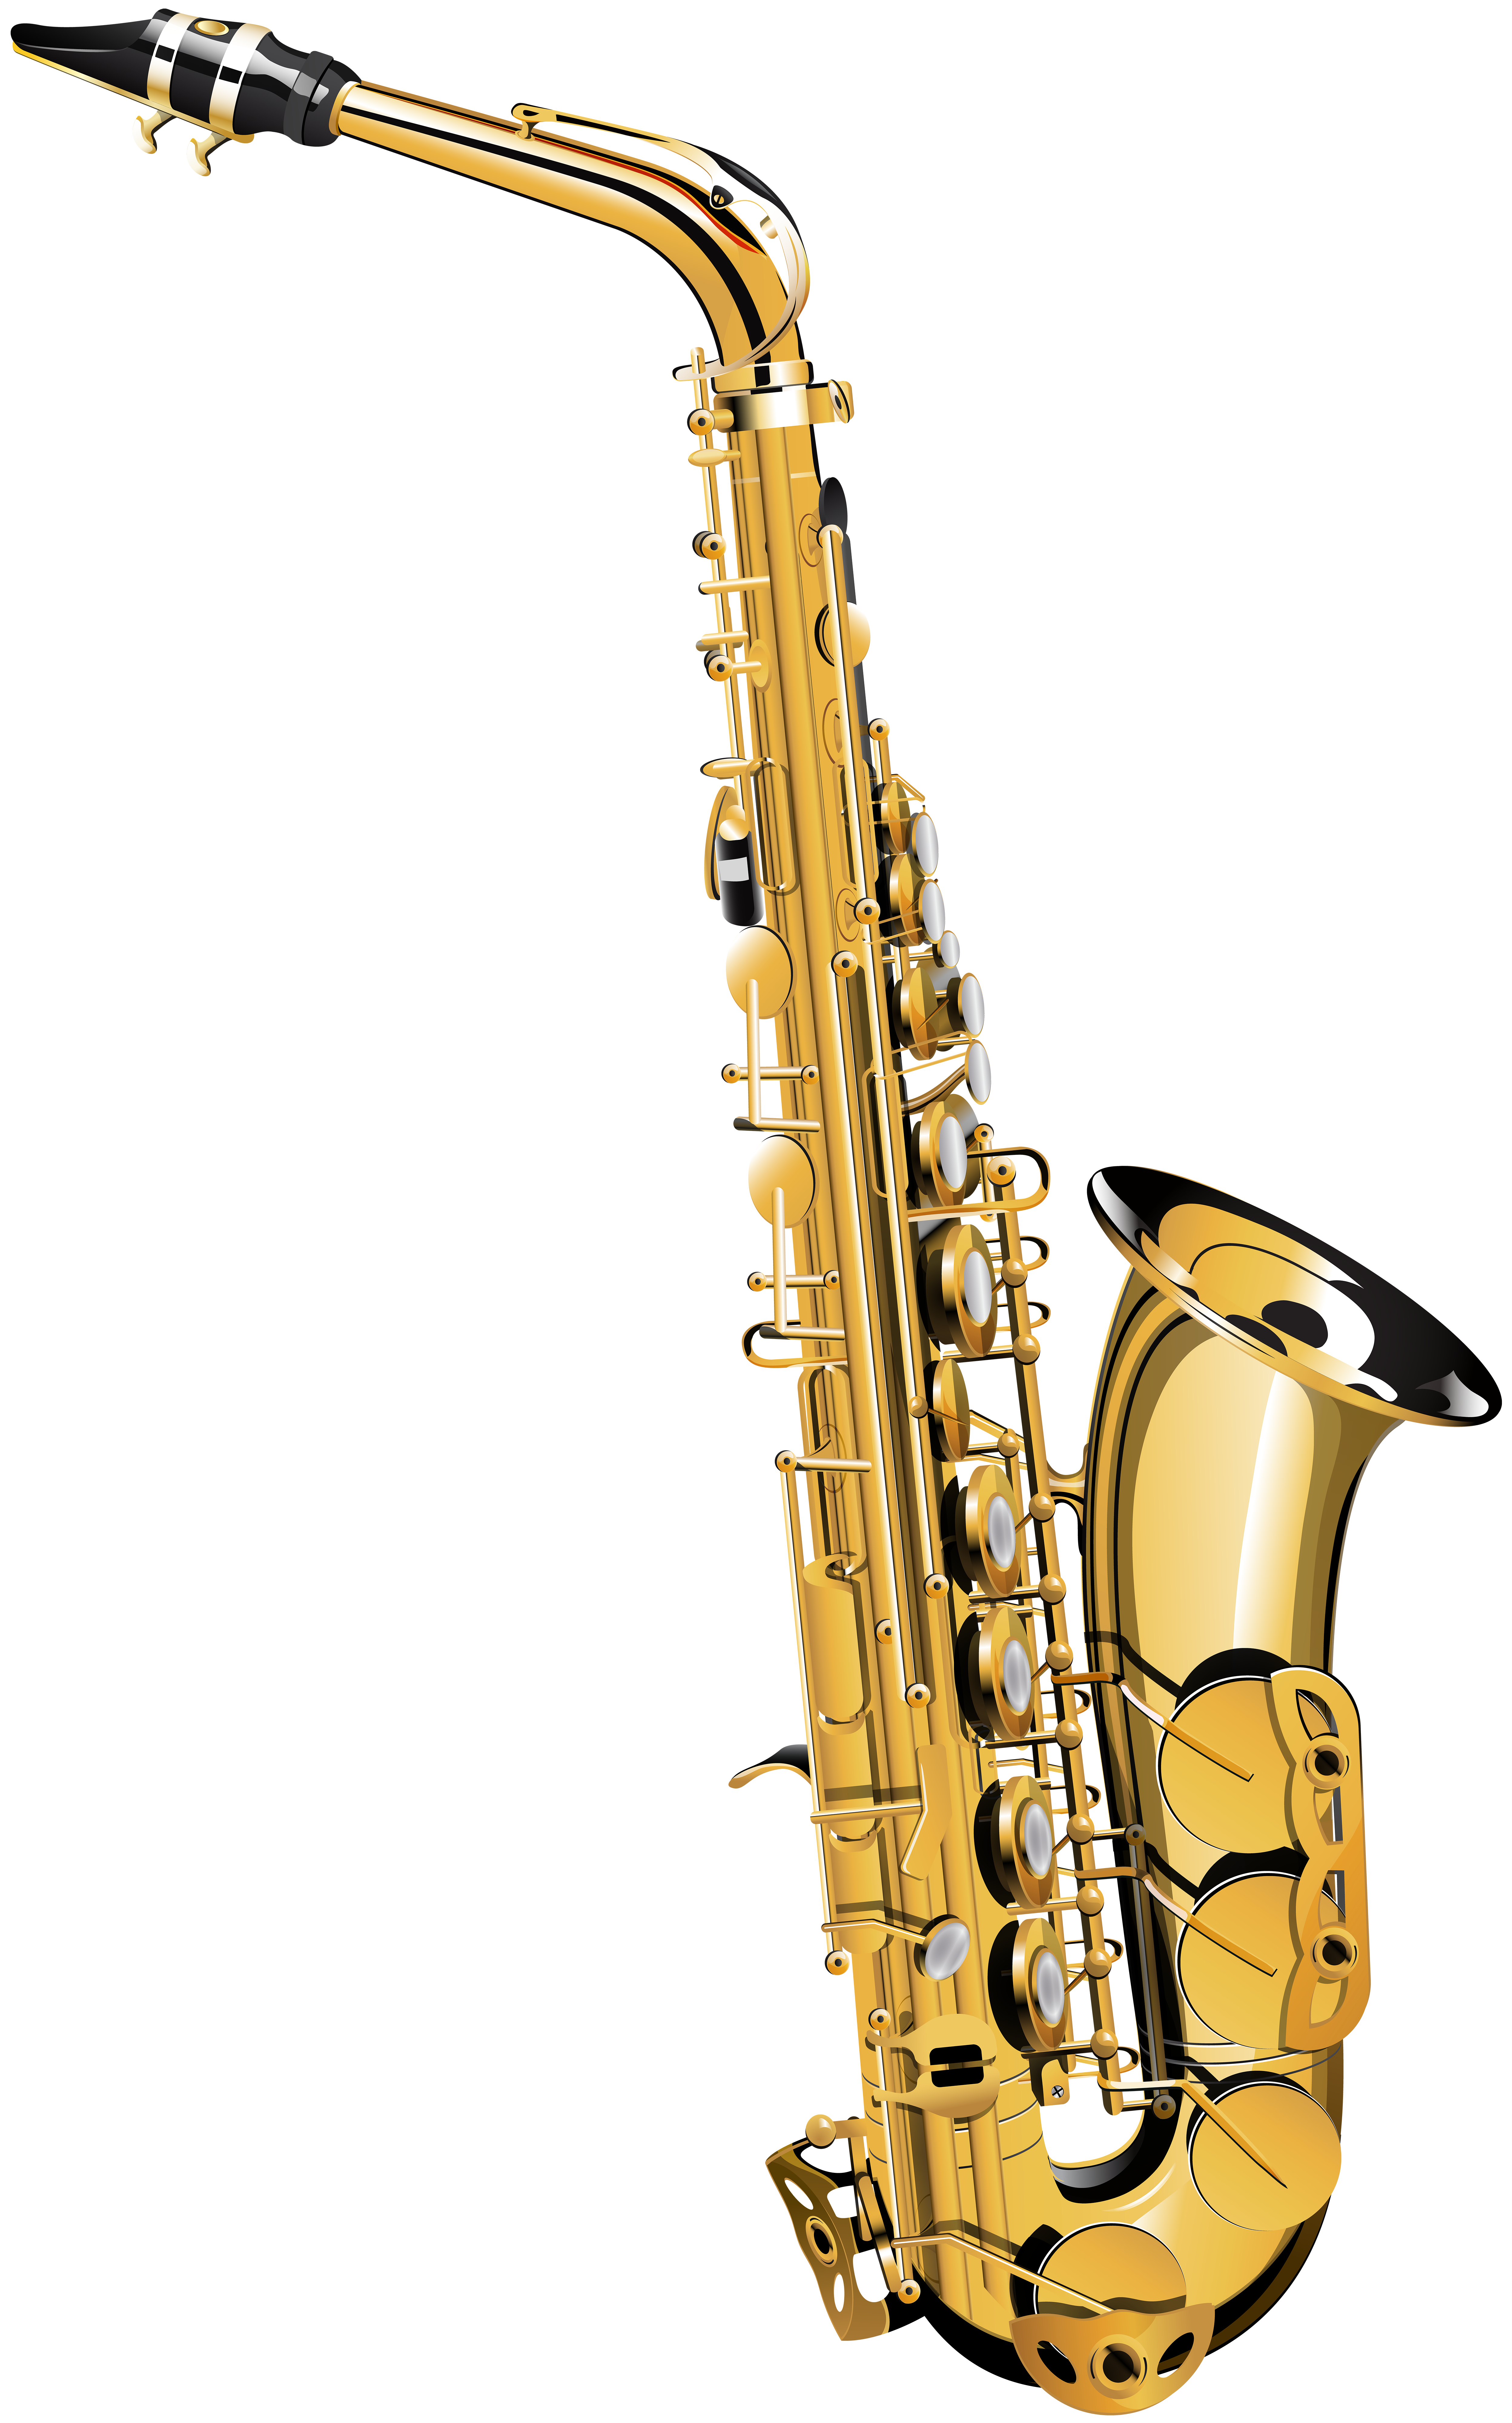 Clarinet clipart saxophone. Transparent png image gallery